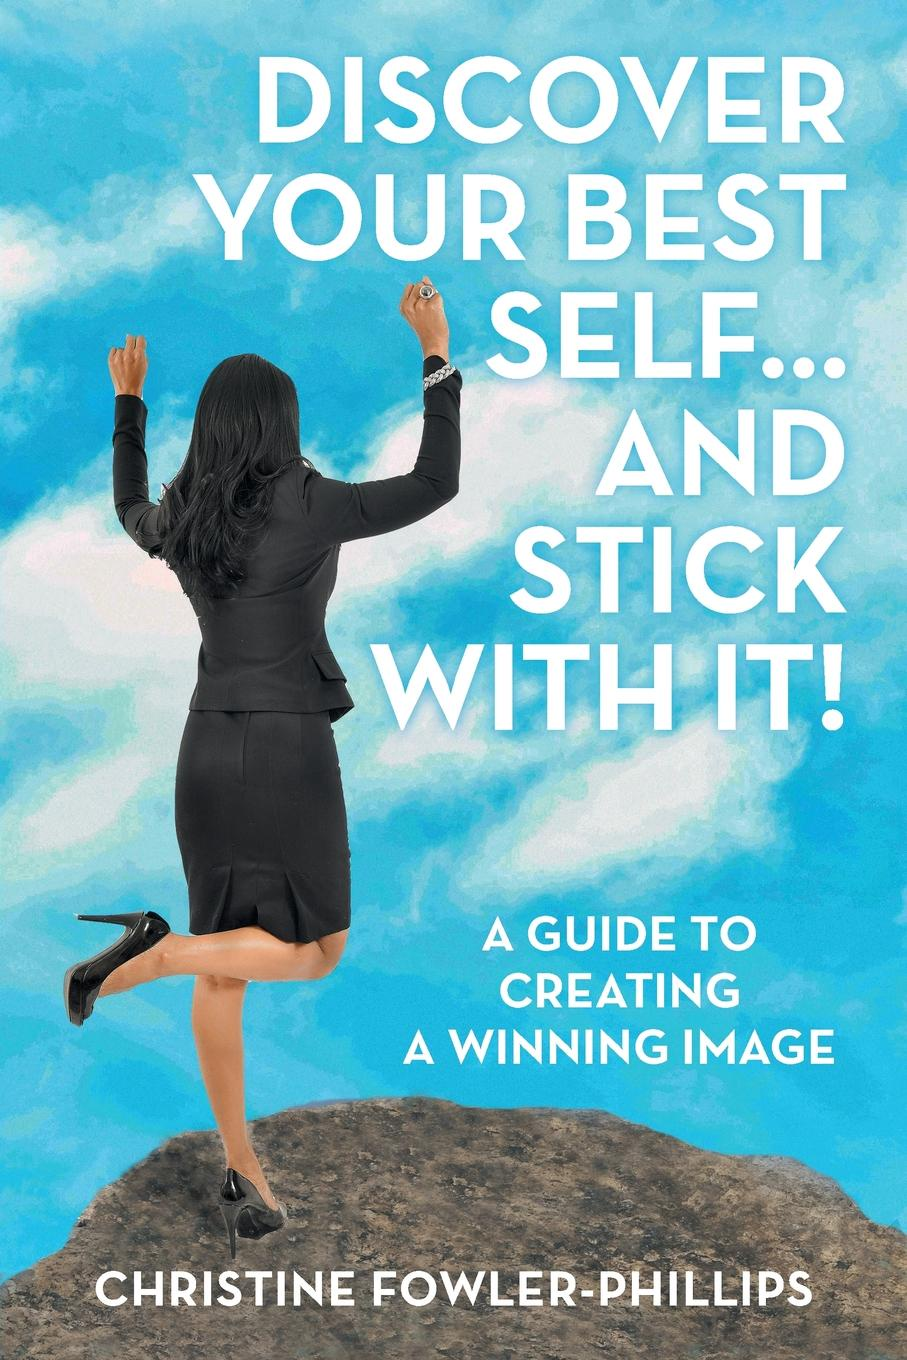 Фото - Christine Fowler-Phillips Discover Your Best Self ... and Stick with It.. A Guide to Creating a Winning Image karissa thacker the art of authenticity tools to become an authentic leader and your best self